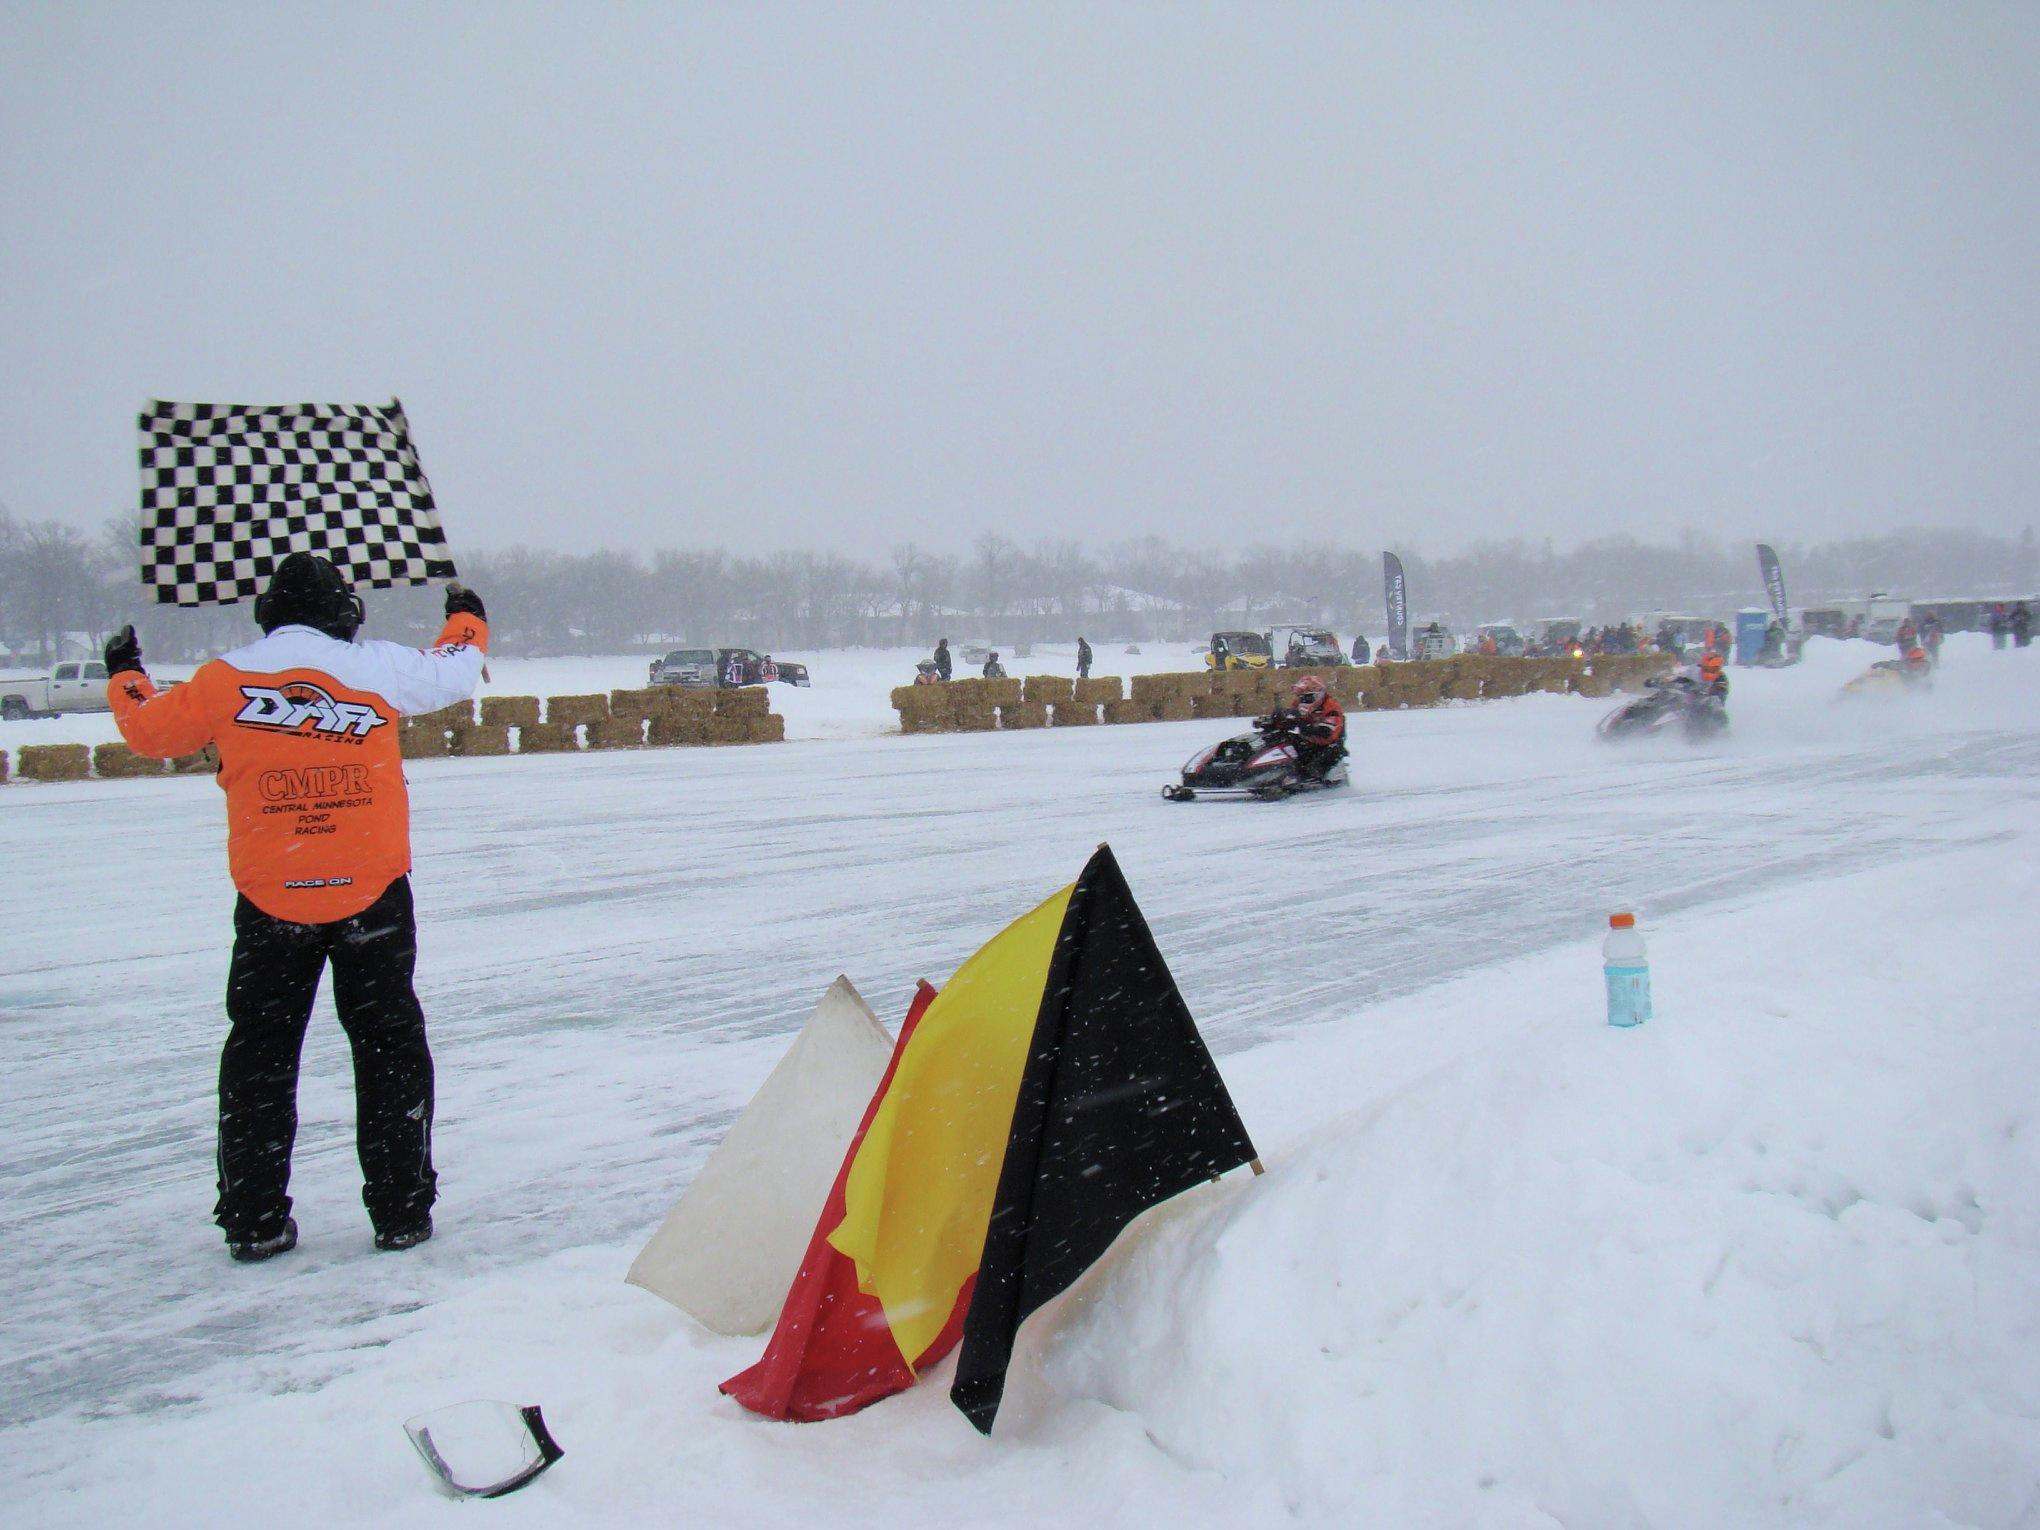 There was plenty of excitement at the inaugural Ice Harvest 440 in February 2018, as racers rounded the corner of the oval pond racing track on Little Detroit Lake. (Submitted Photo)